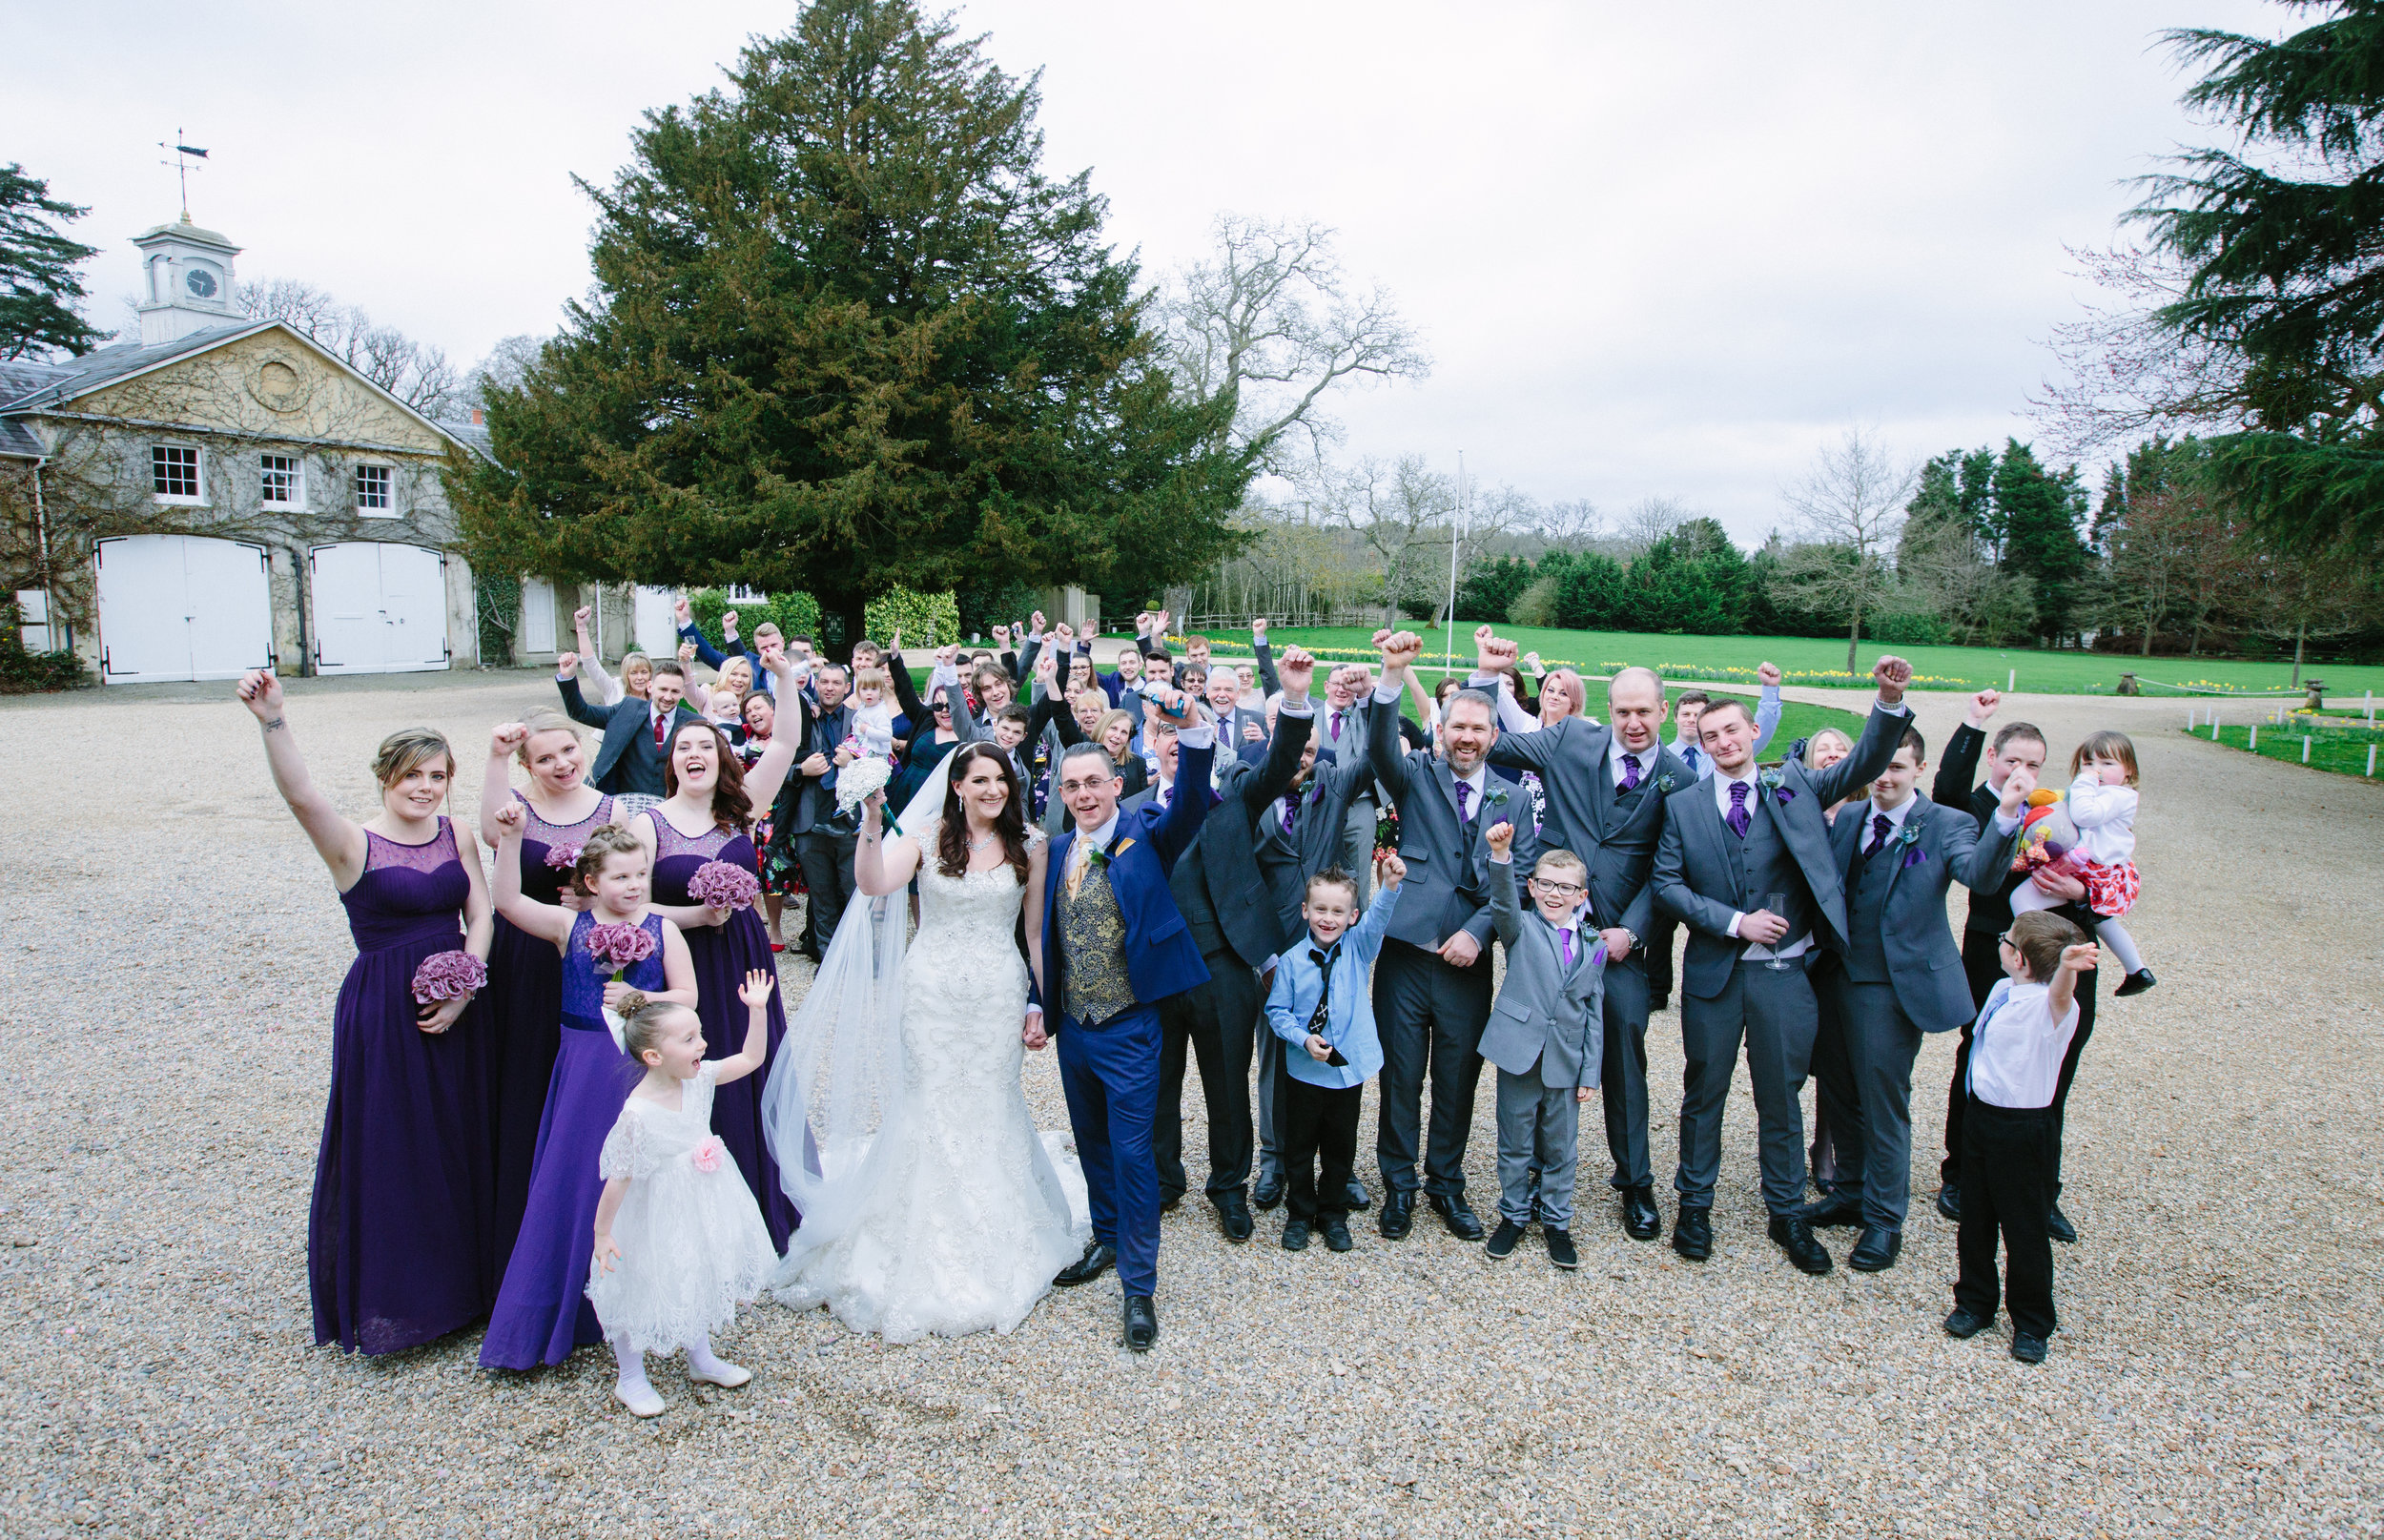 northbrook-park-farnham-hamnpshire-winter-spring-wedding-photography-group-shot-35